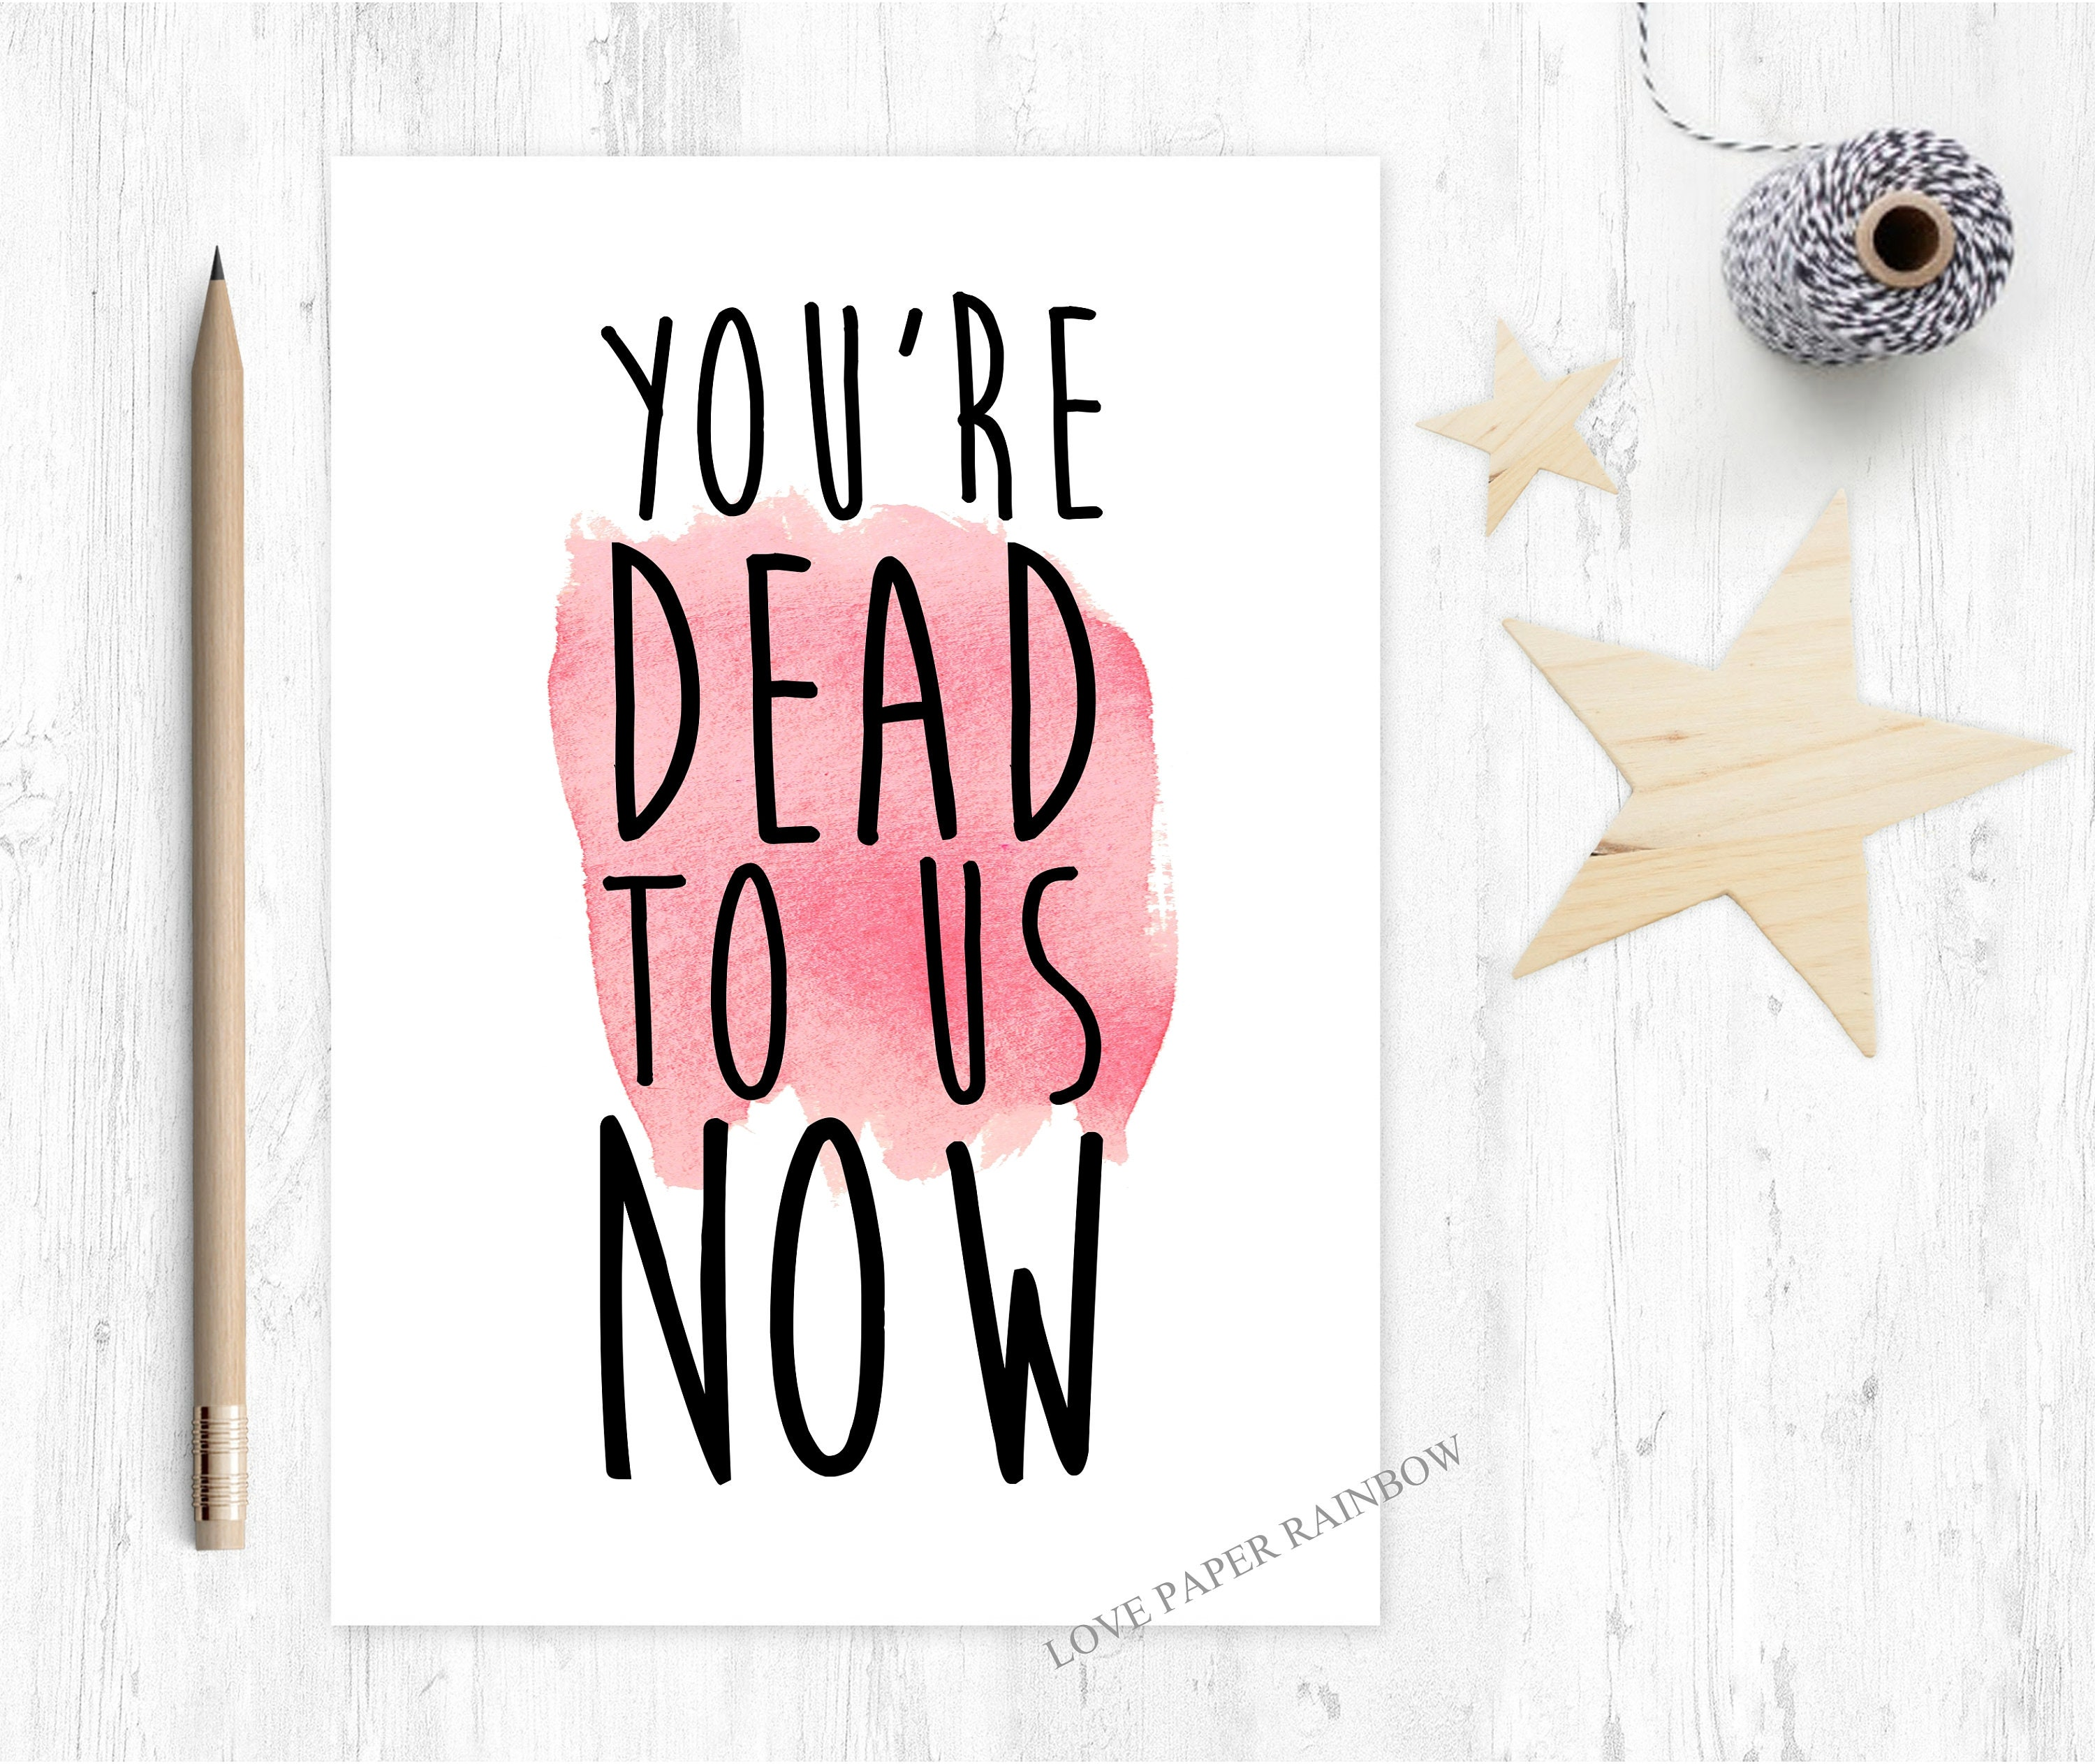 Funny leaving card moving house job promotion youre dead to us now funny leaving card moving house job promotion youre dead to us now inappropriate greeting card sorry youre leaving retirement card m4hsunfo